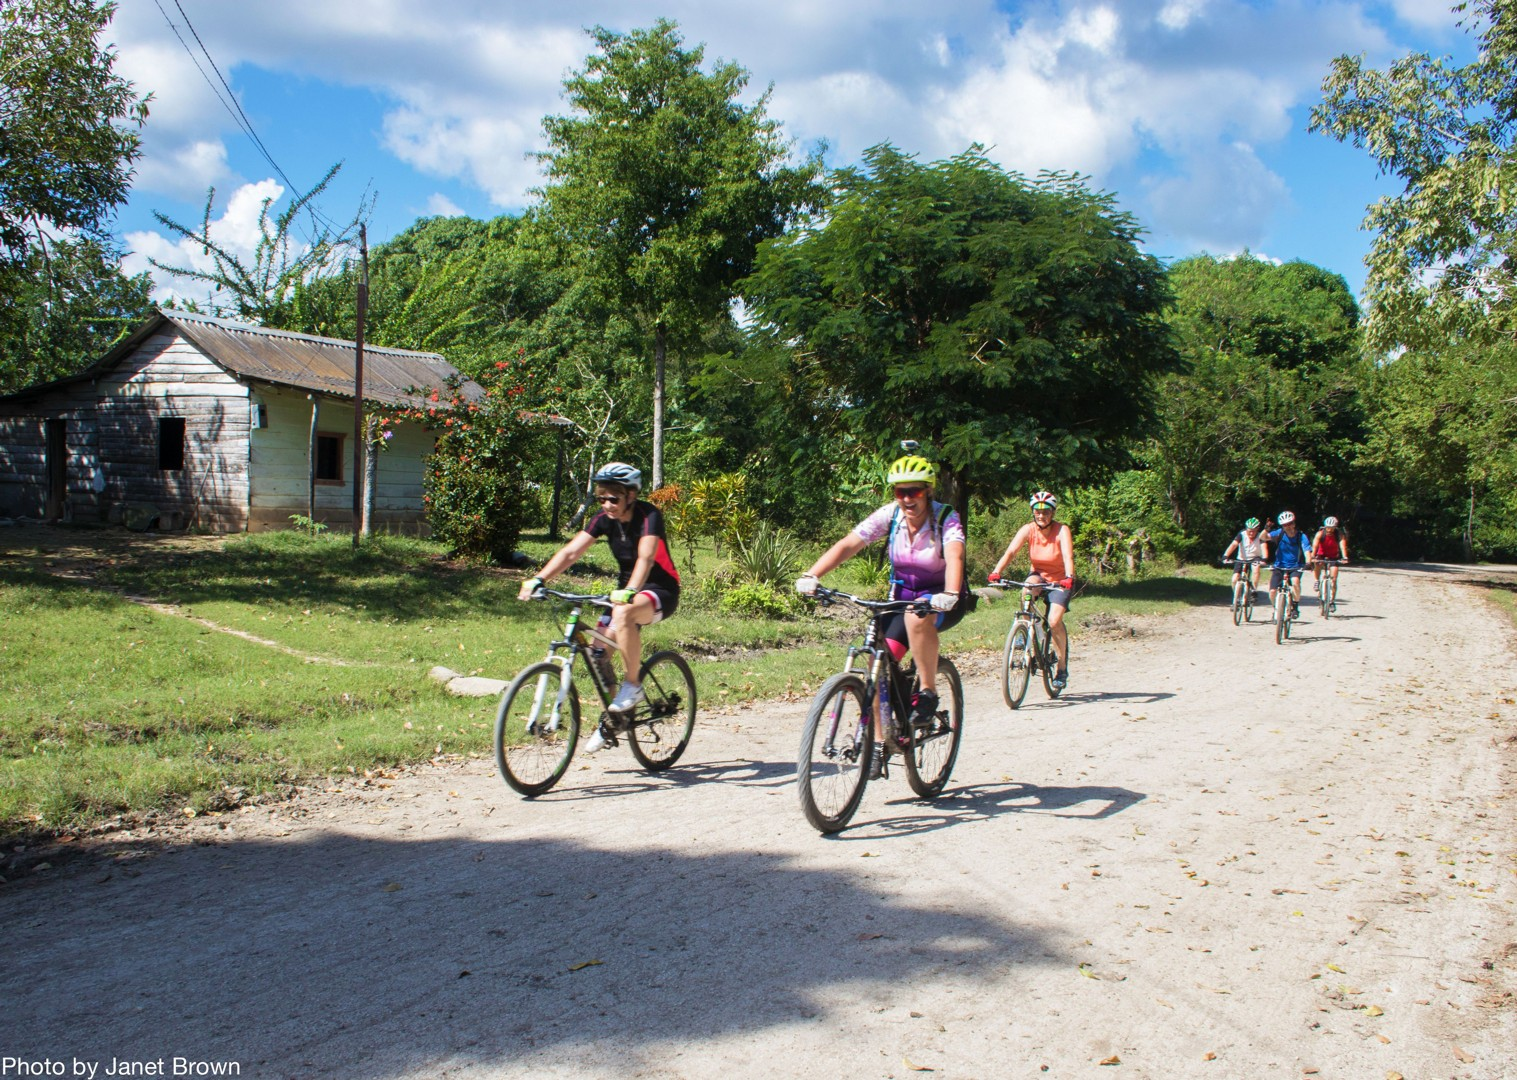 _Customer.145239.37315.jpg - Cuba - Cuban Revolutions - Cycling Adventures